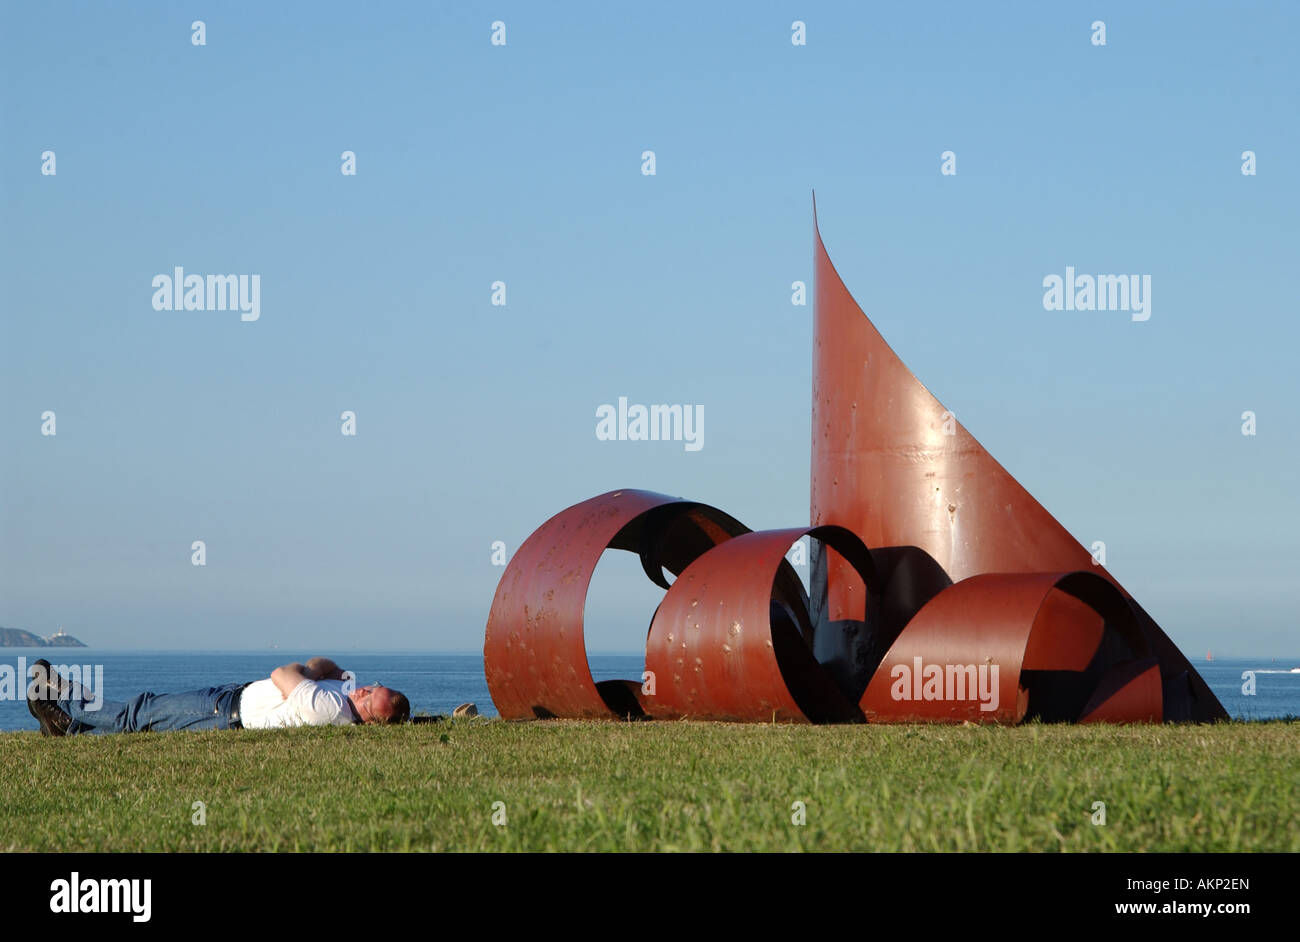 A man takes a nap beside some public art on a hot summers day in Dun Laoghaire, Co. Dublin, Ireland. - Stock Image